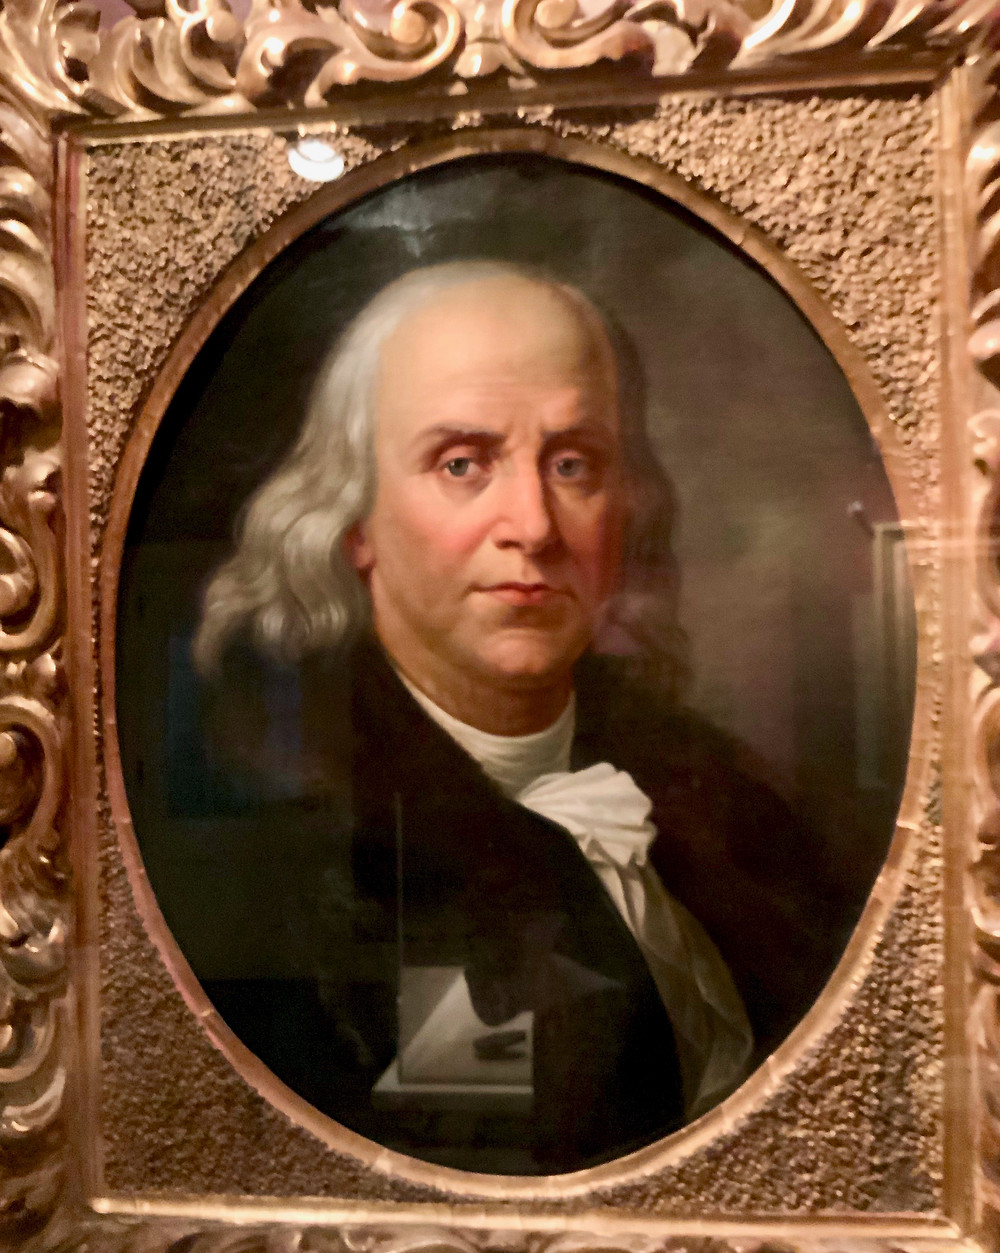 Portrait of Benjamin Franklin the the Chateau Ramezay